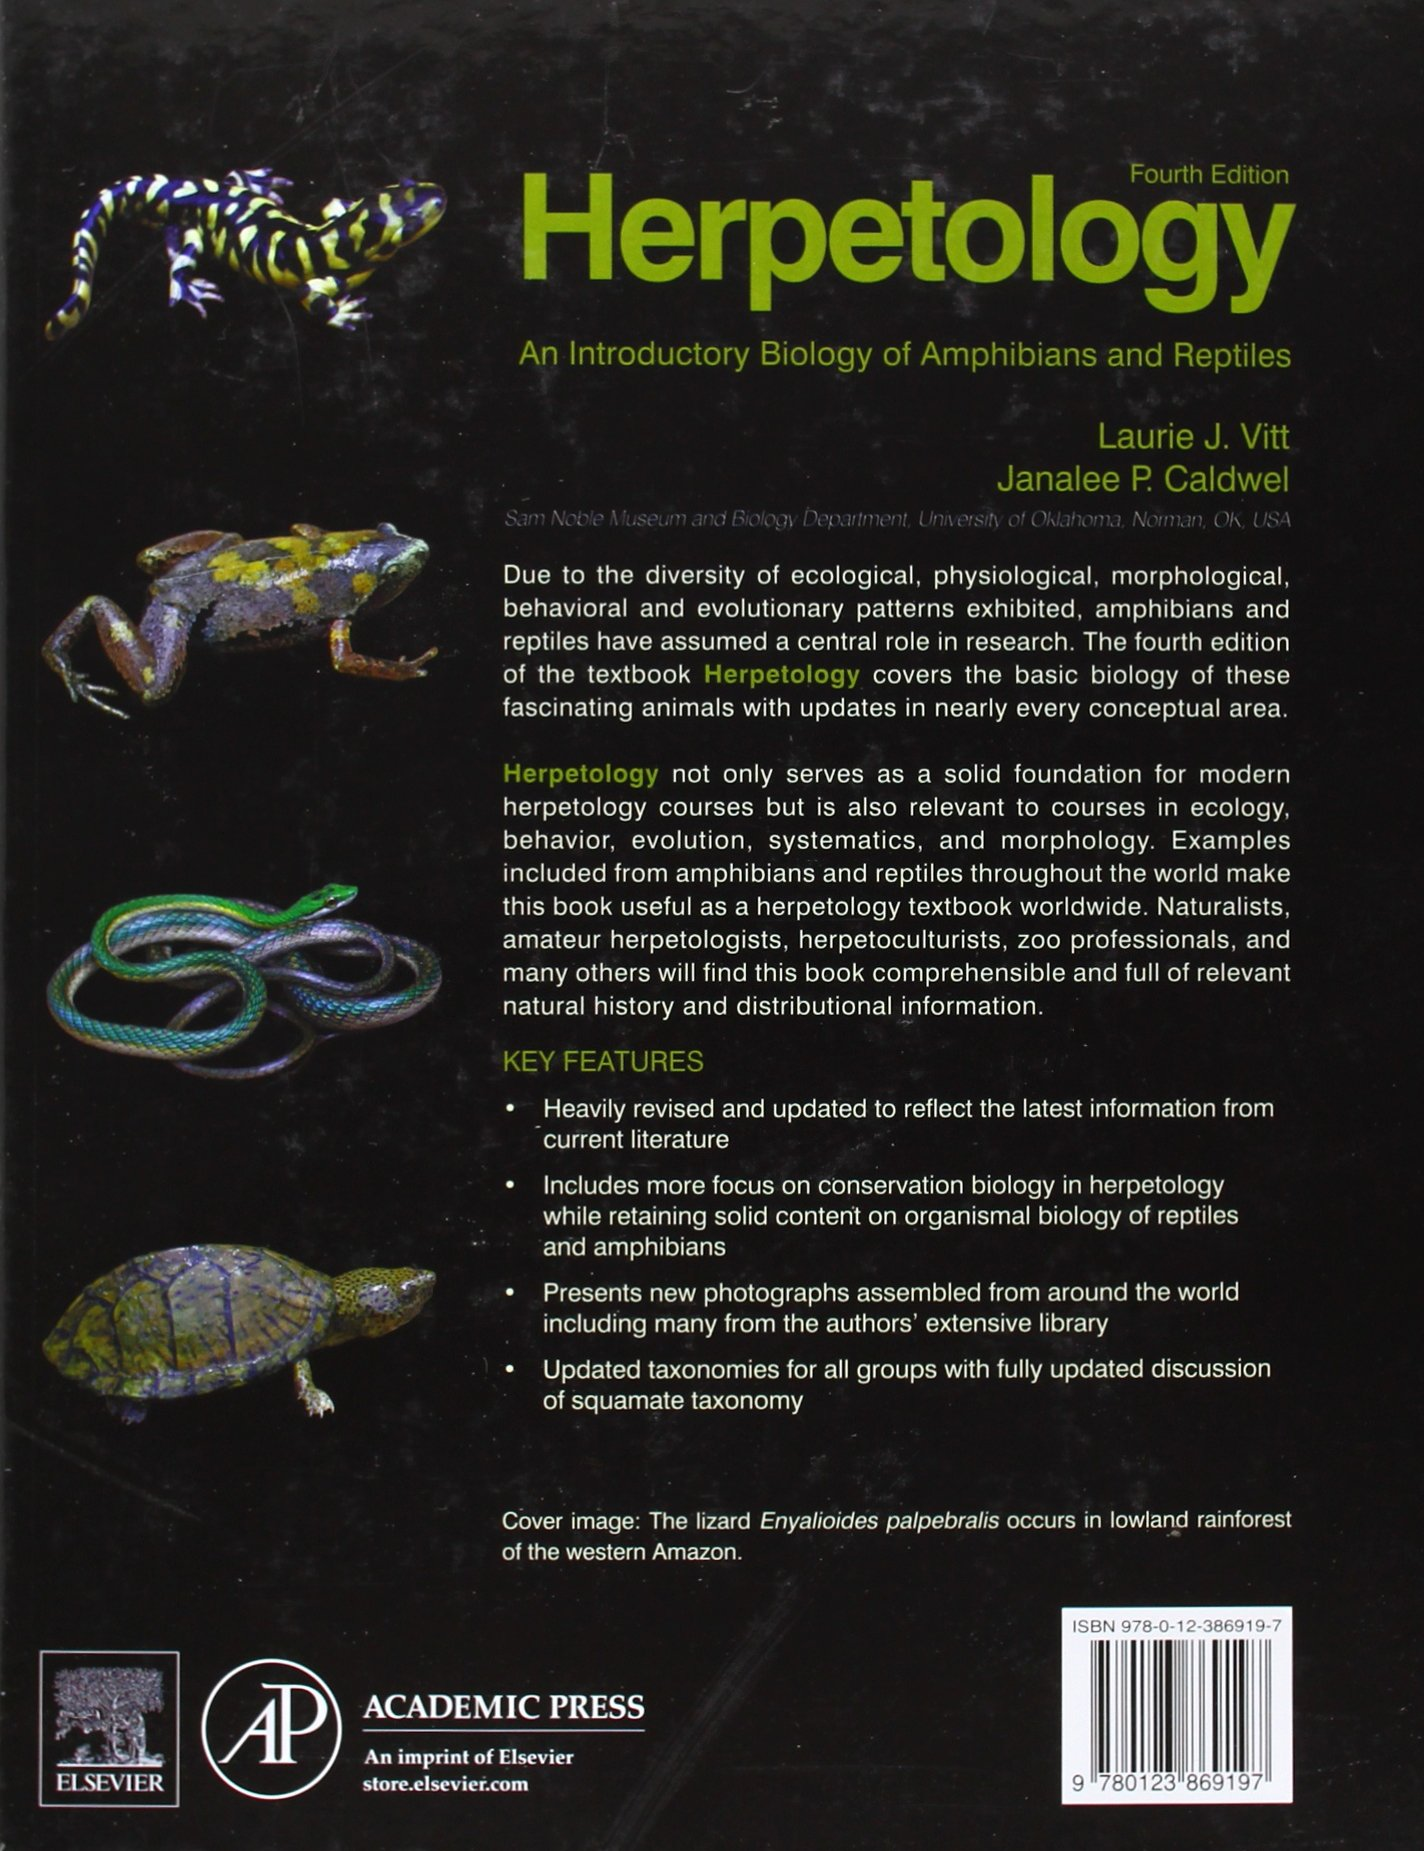 Herpetology: An Introductory Biology of Amphibians and Reptiles